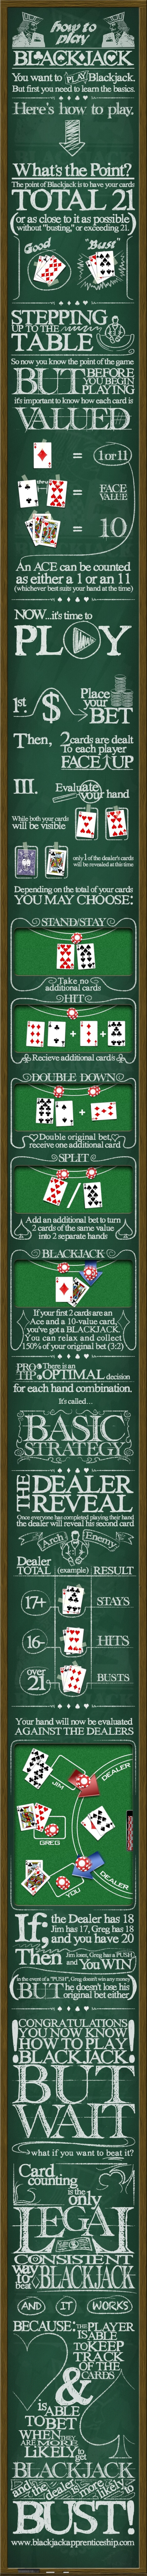 How to play blackjack skinny